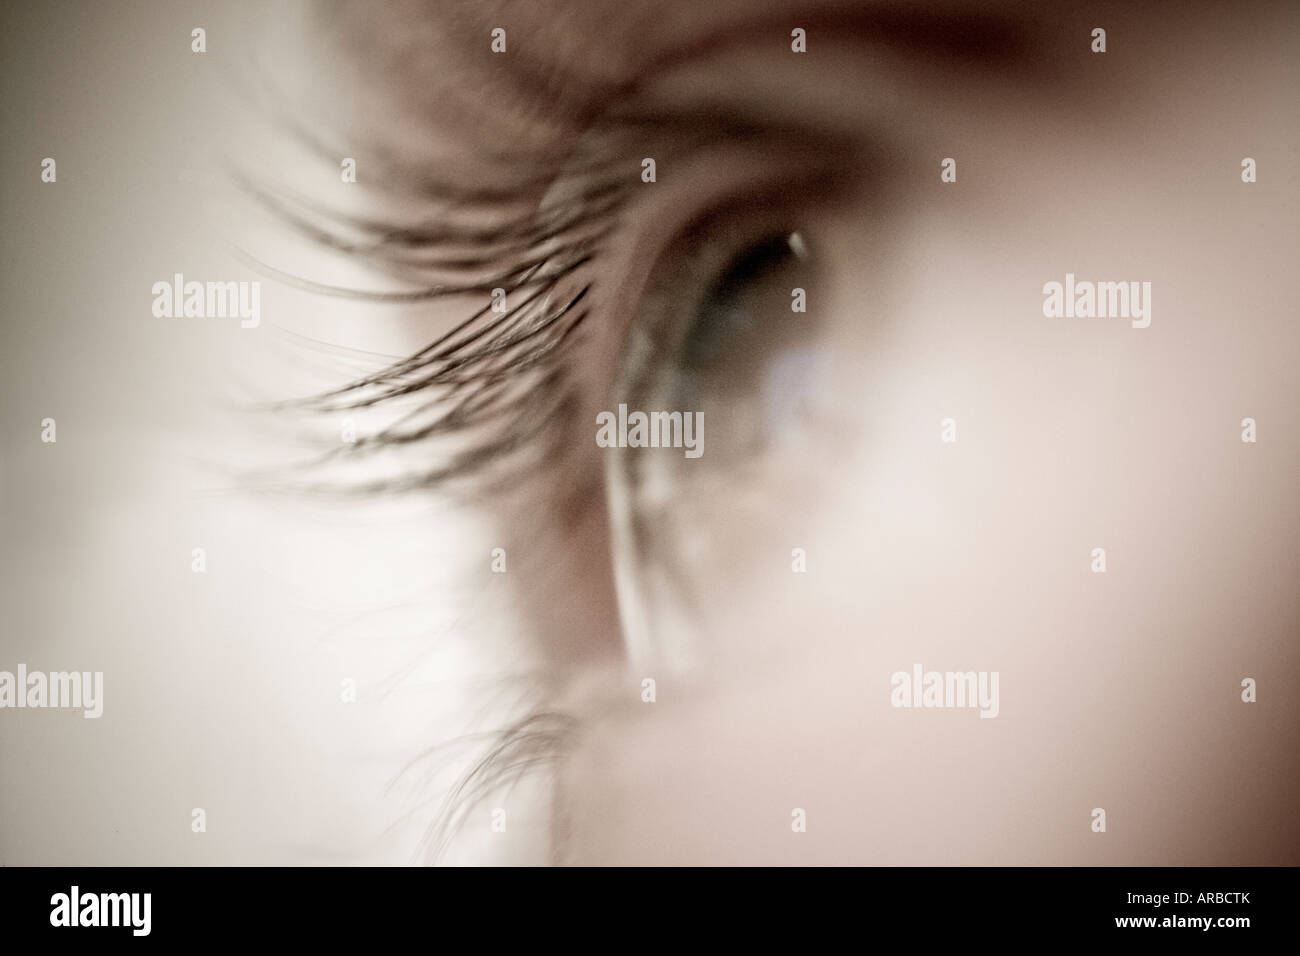 Close up of eye and eyelashes looking off in distance soft and fuzzy monochromatic - Stock Image